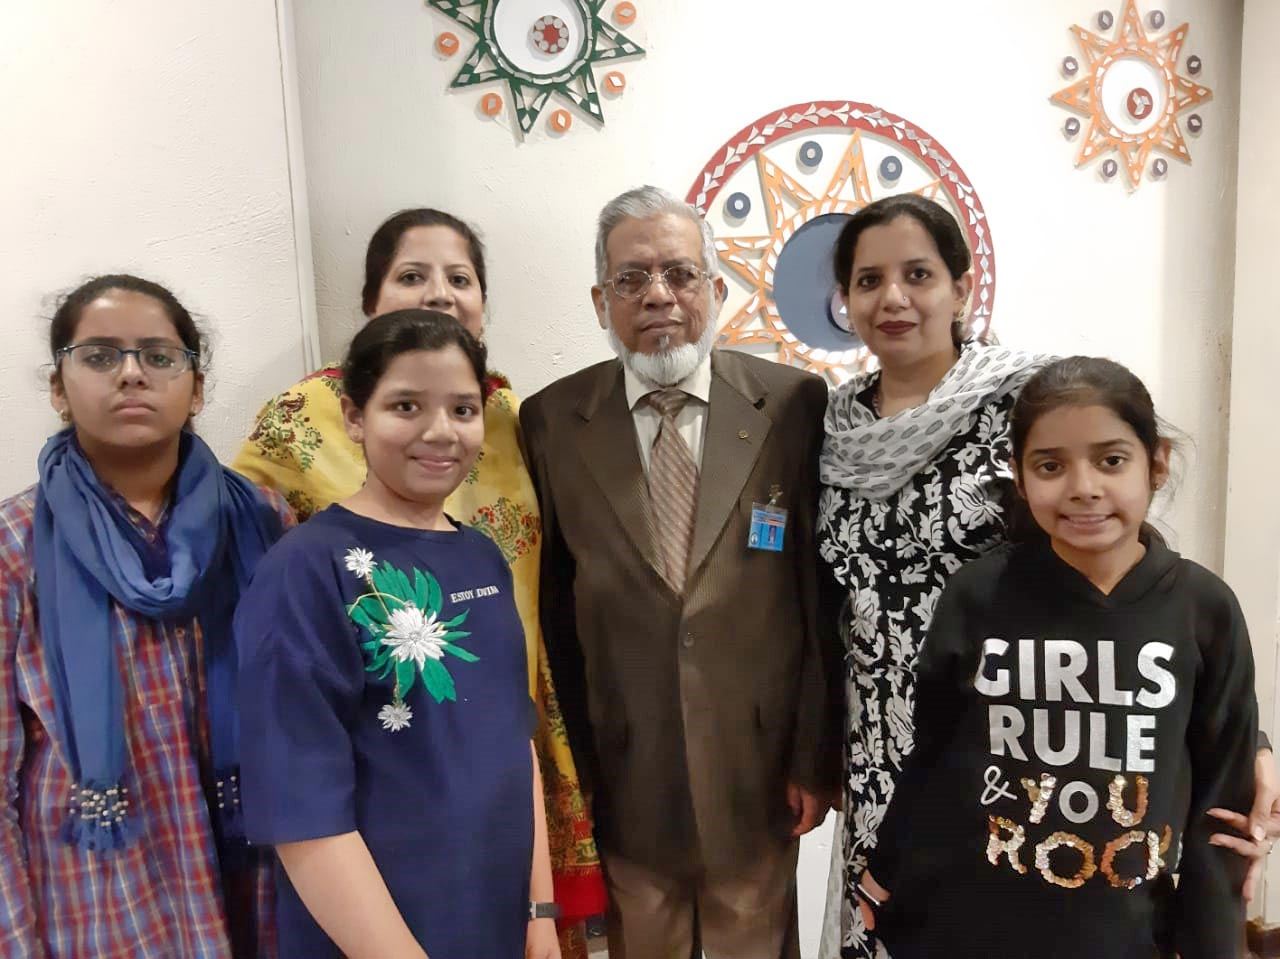 Engr. Iqbal A. Khan with his daughters and the grand kids